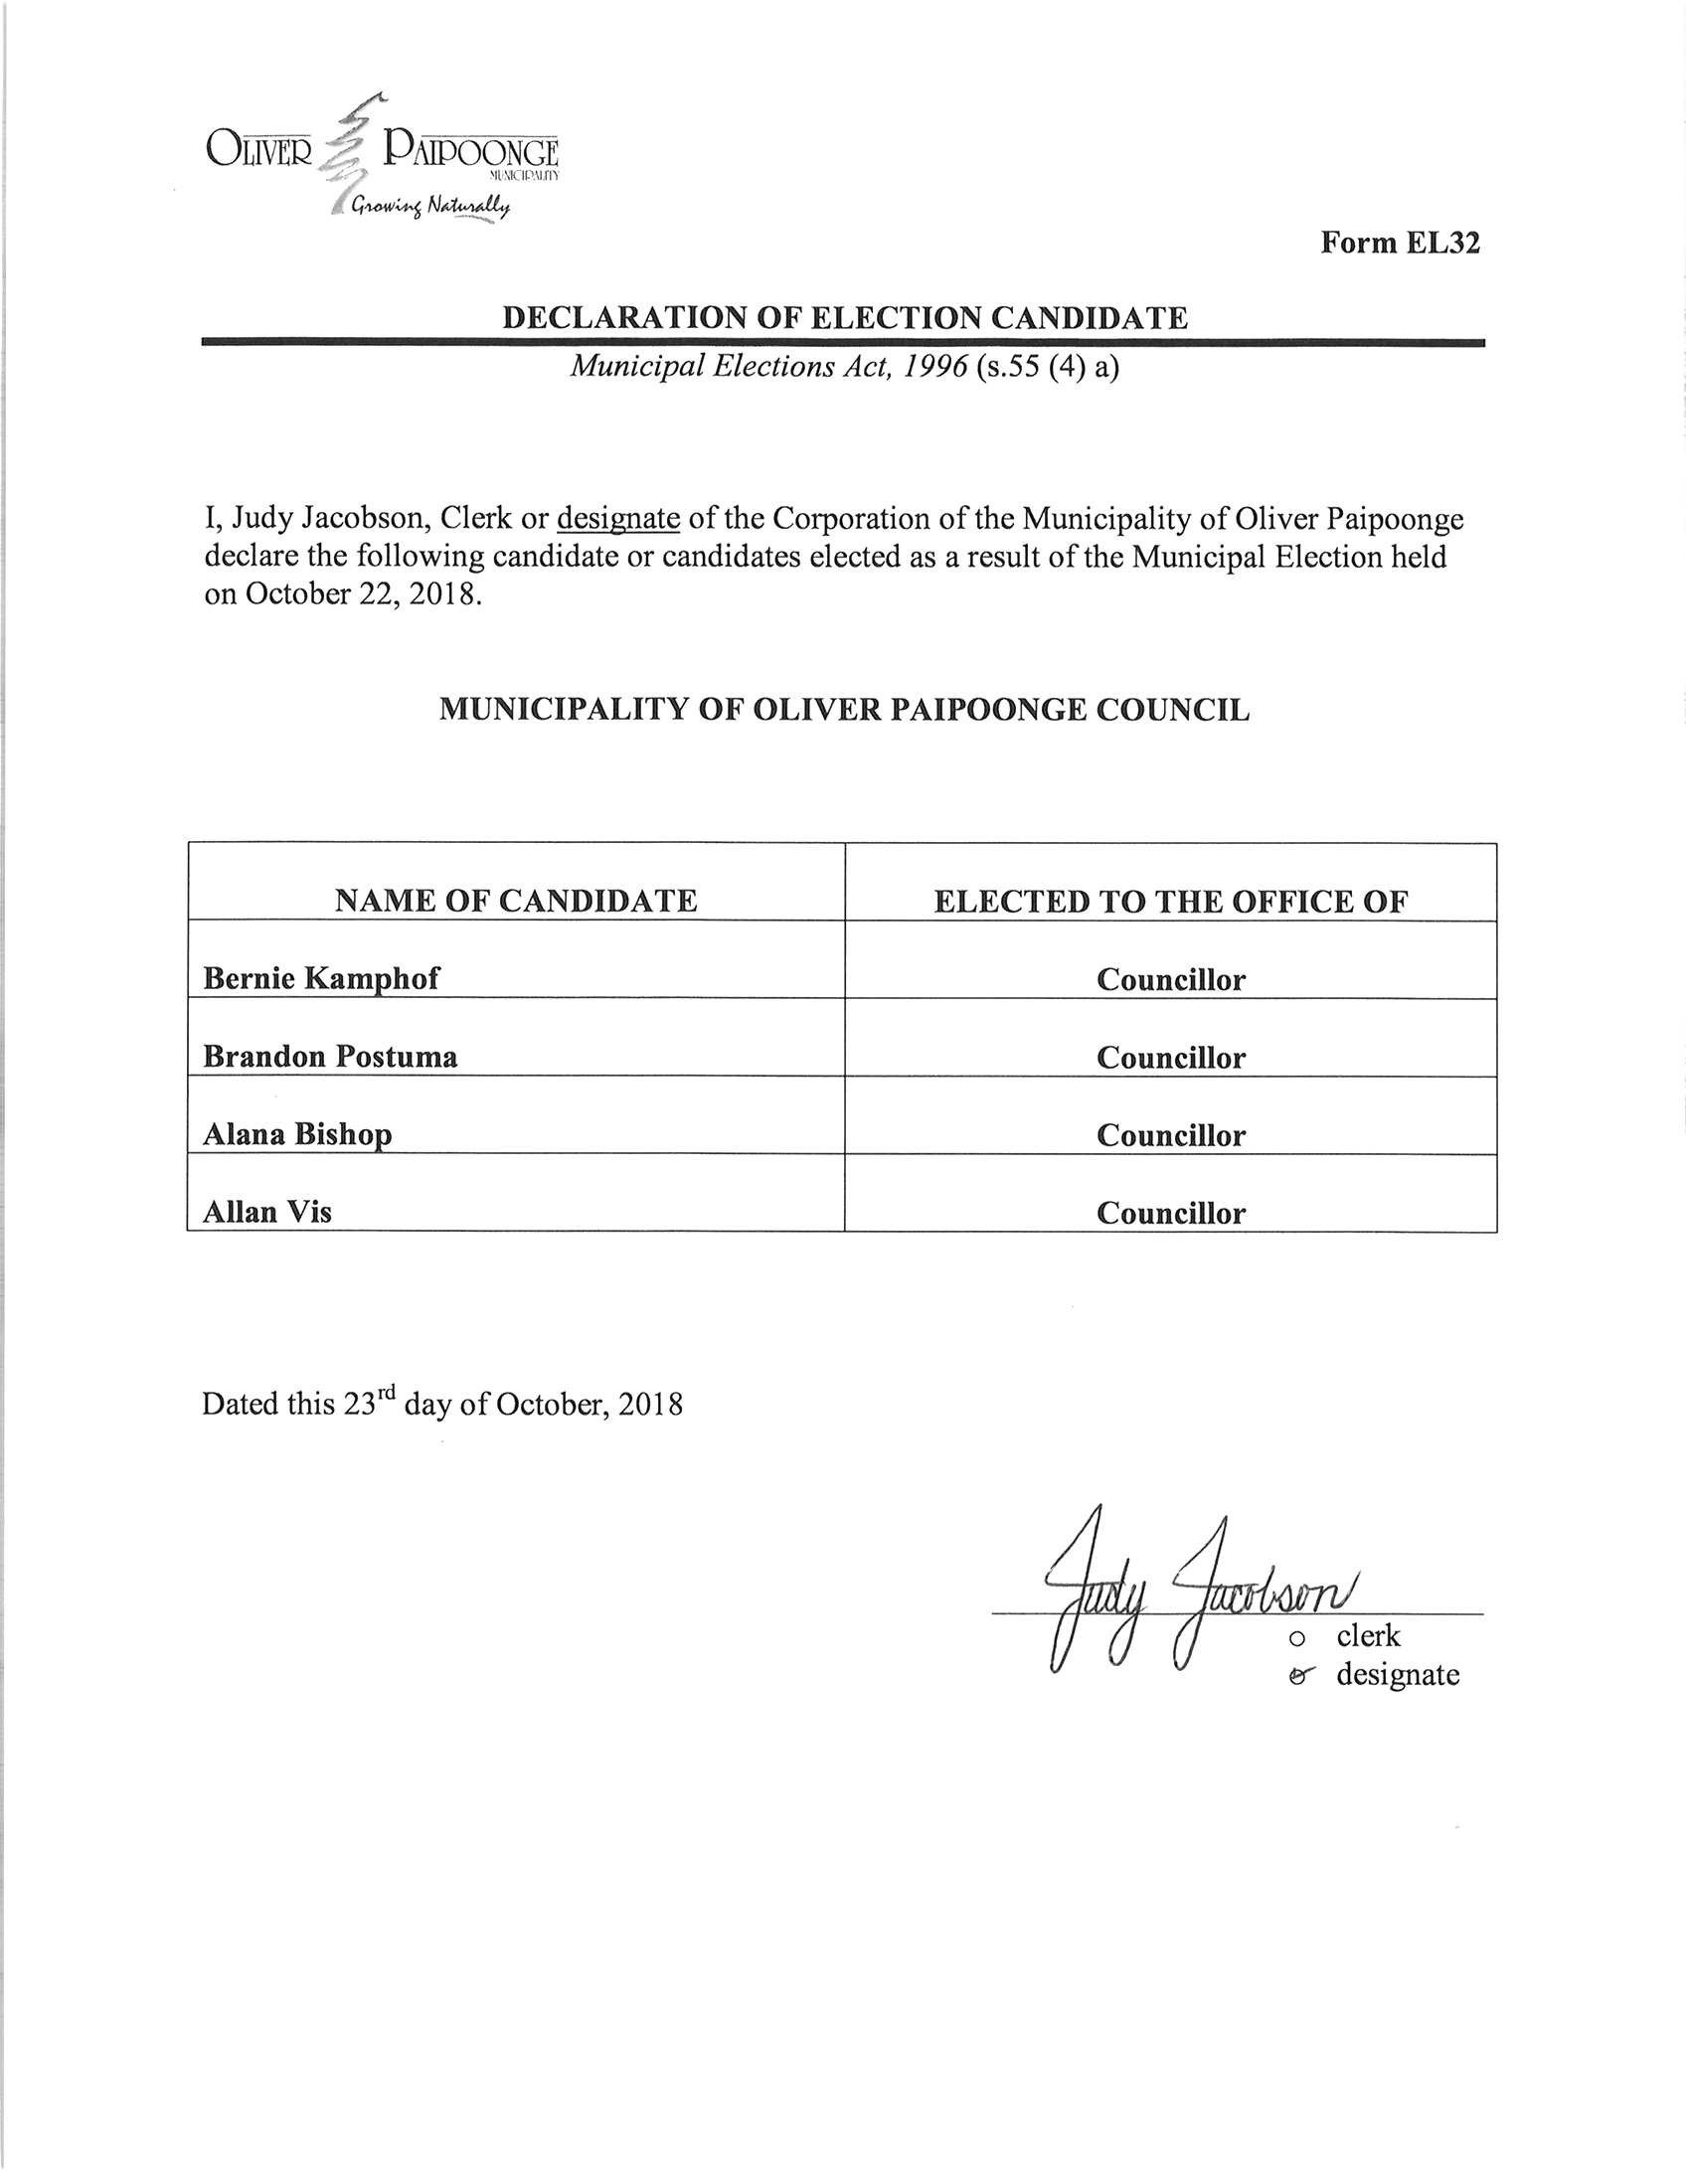 Declaration of Election Candidate